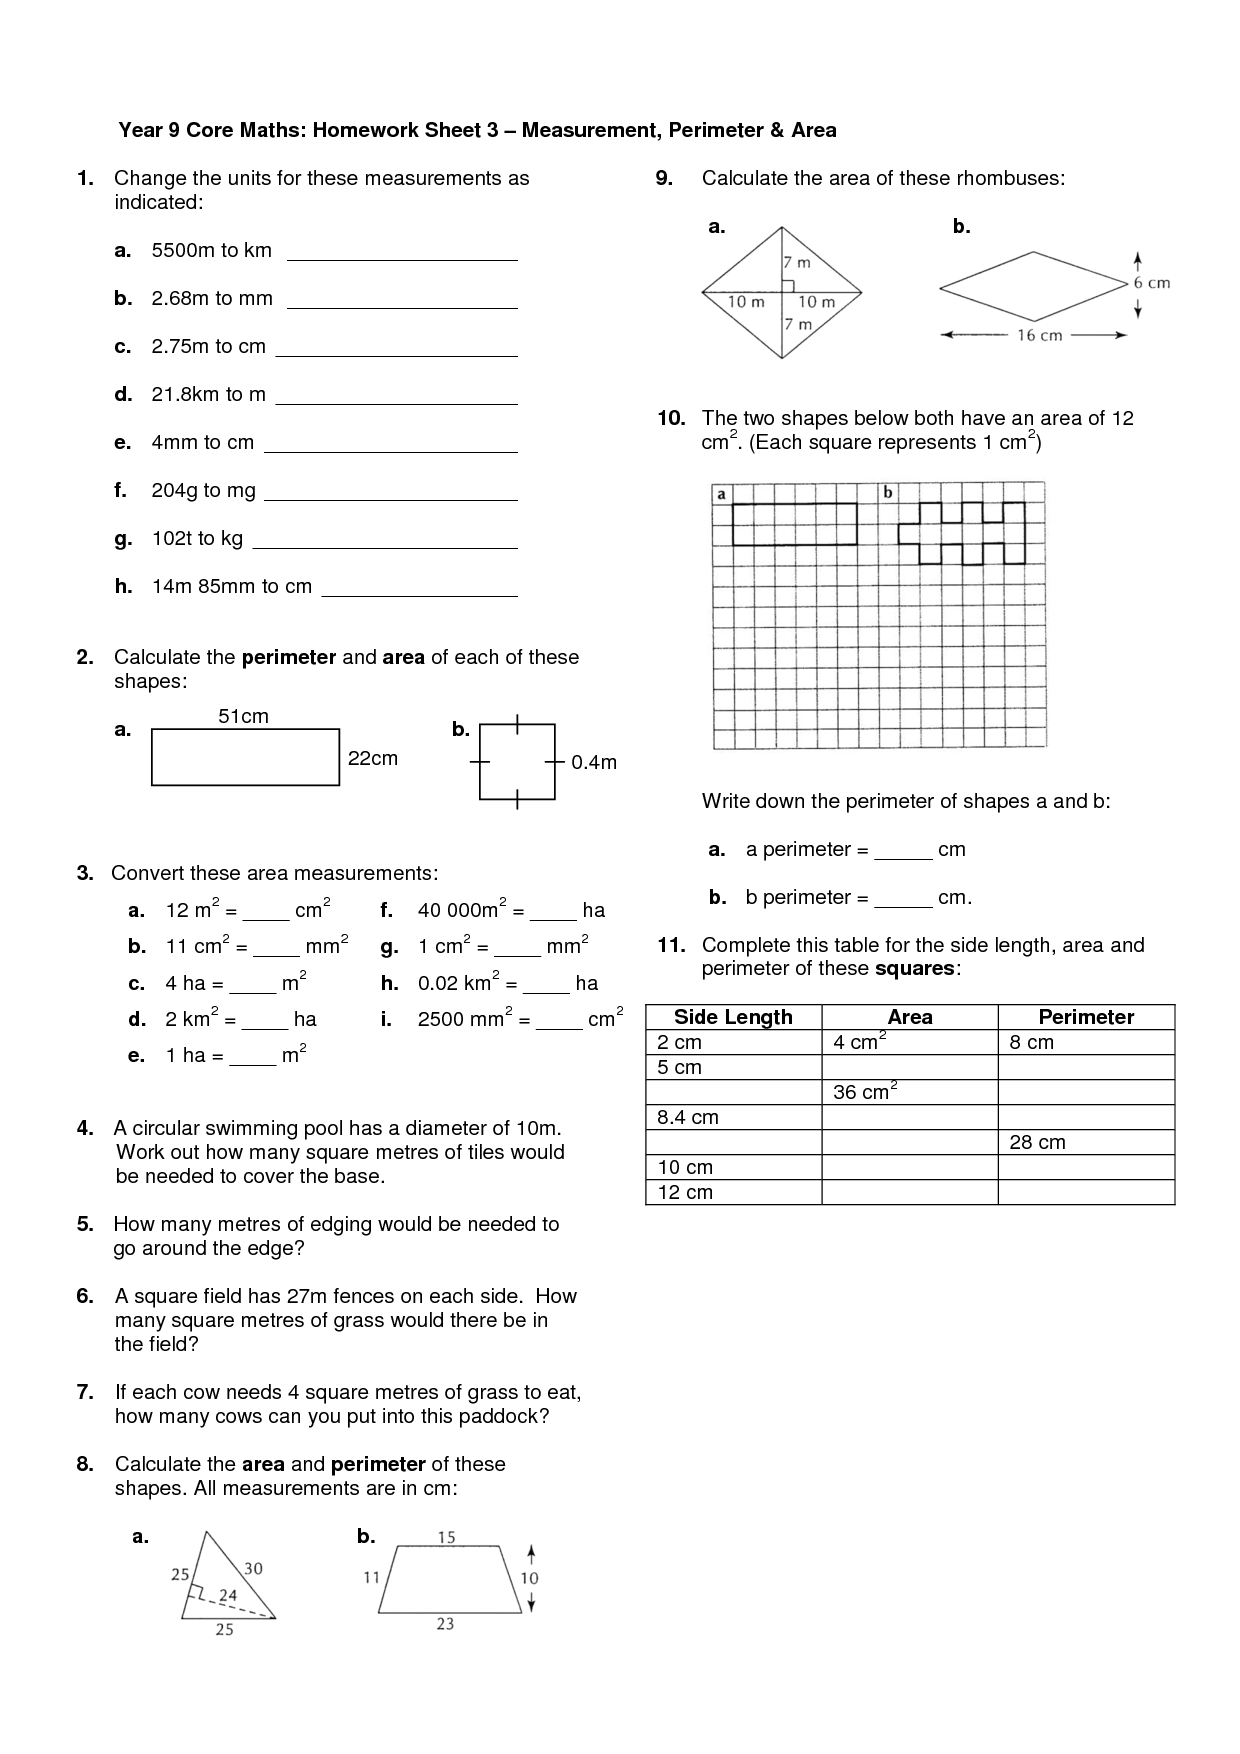 4th Grade Homework Sheets   Homework+sheets+for+year+4   Homework sheet [ 1754 x 1240 Pixel ]